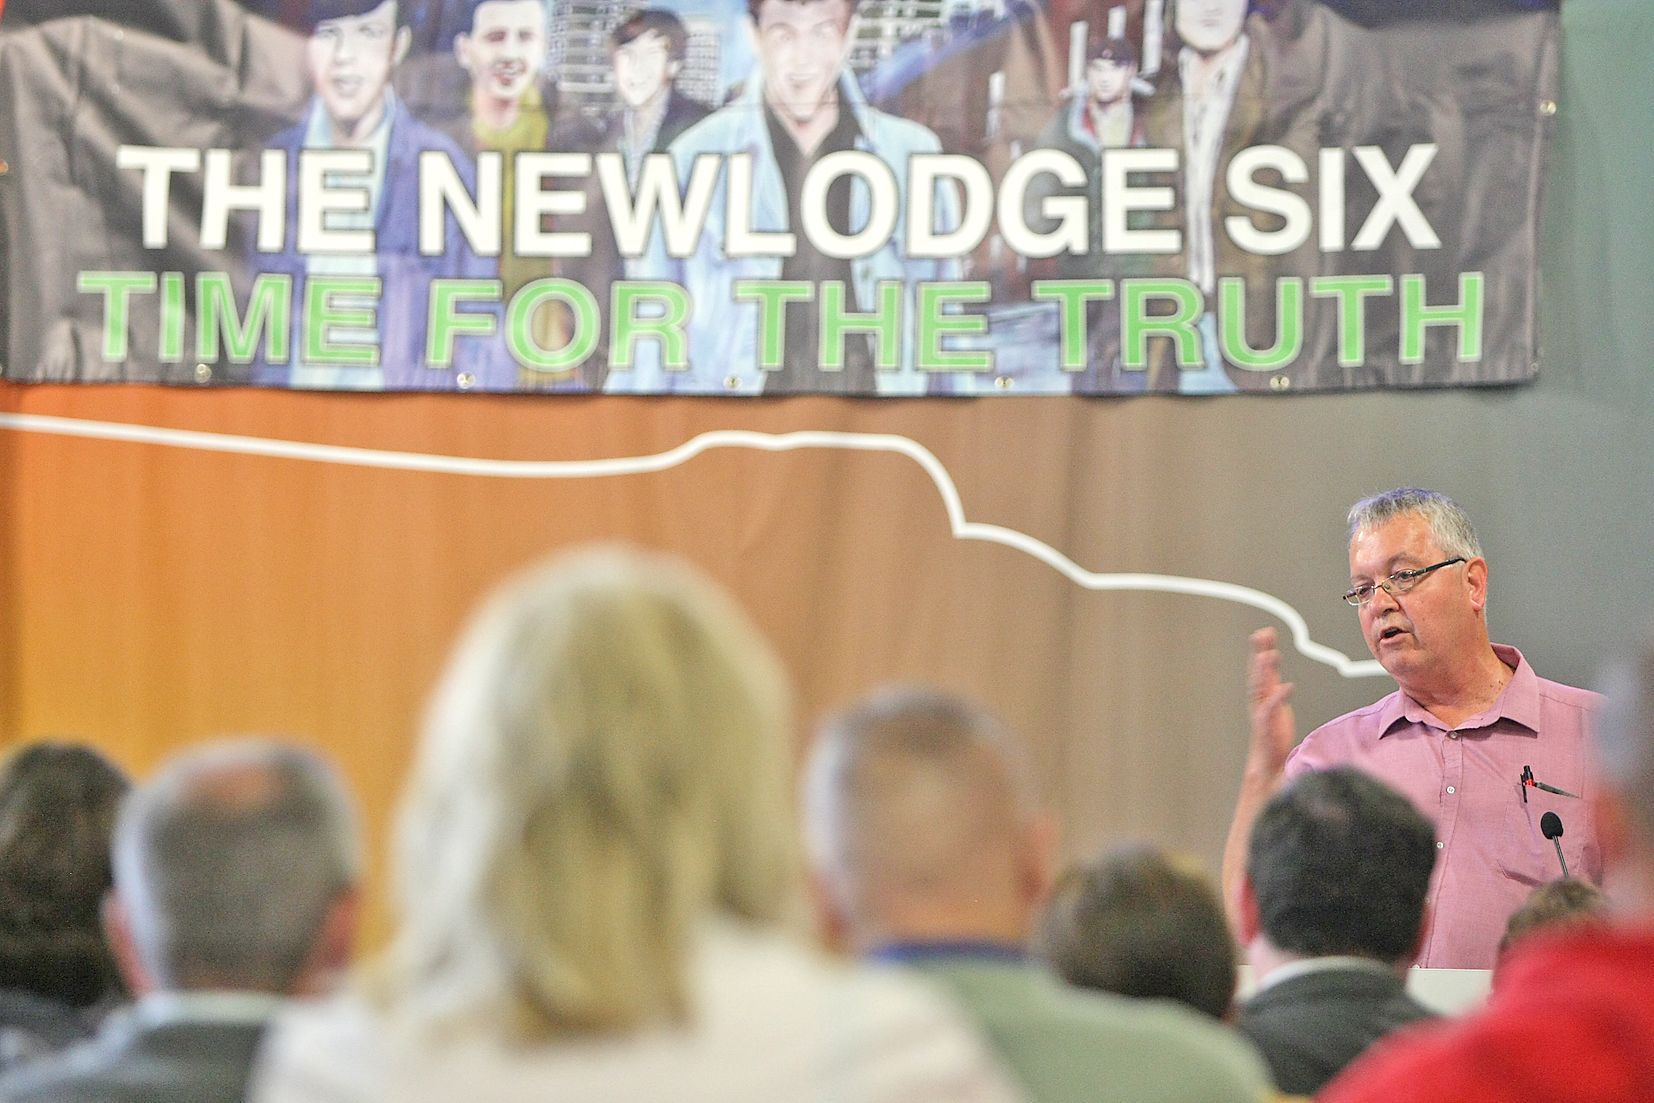 TALK: RFJ's Mike Ritchie speaking at an event about the killings in the New Lodge